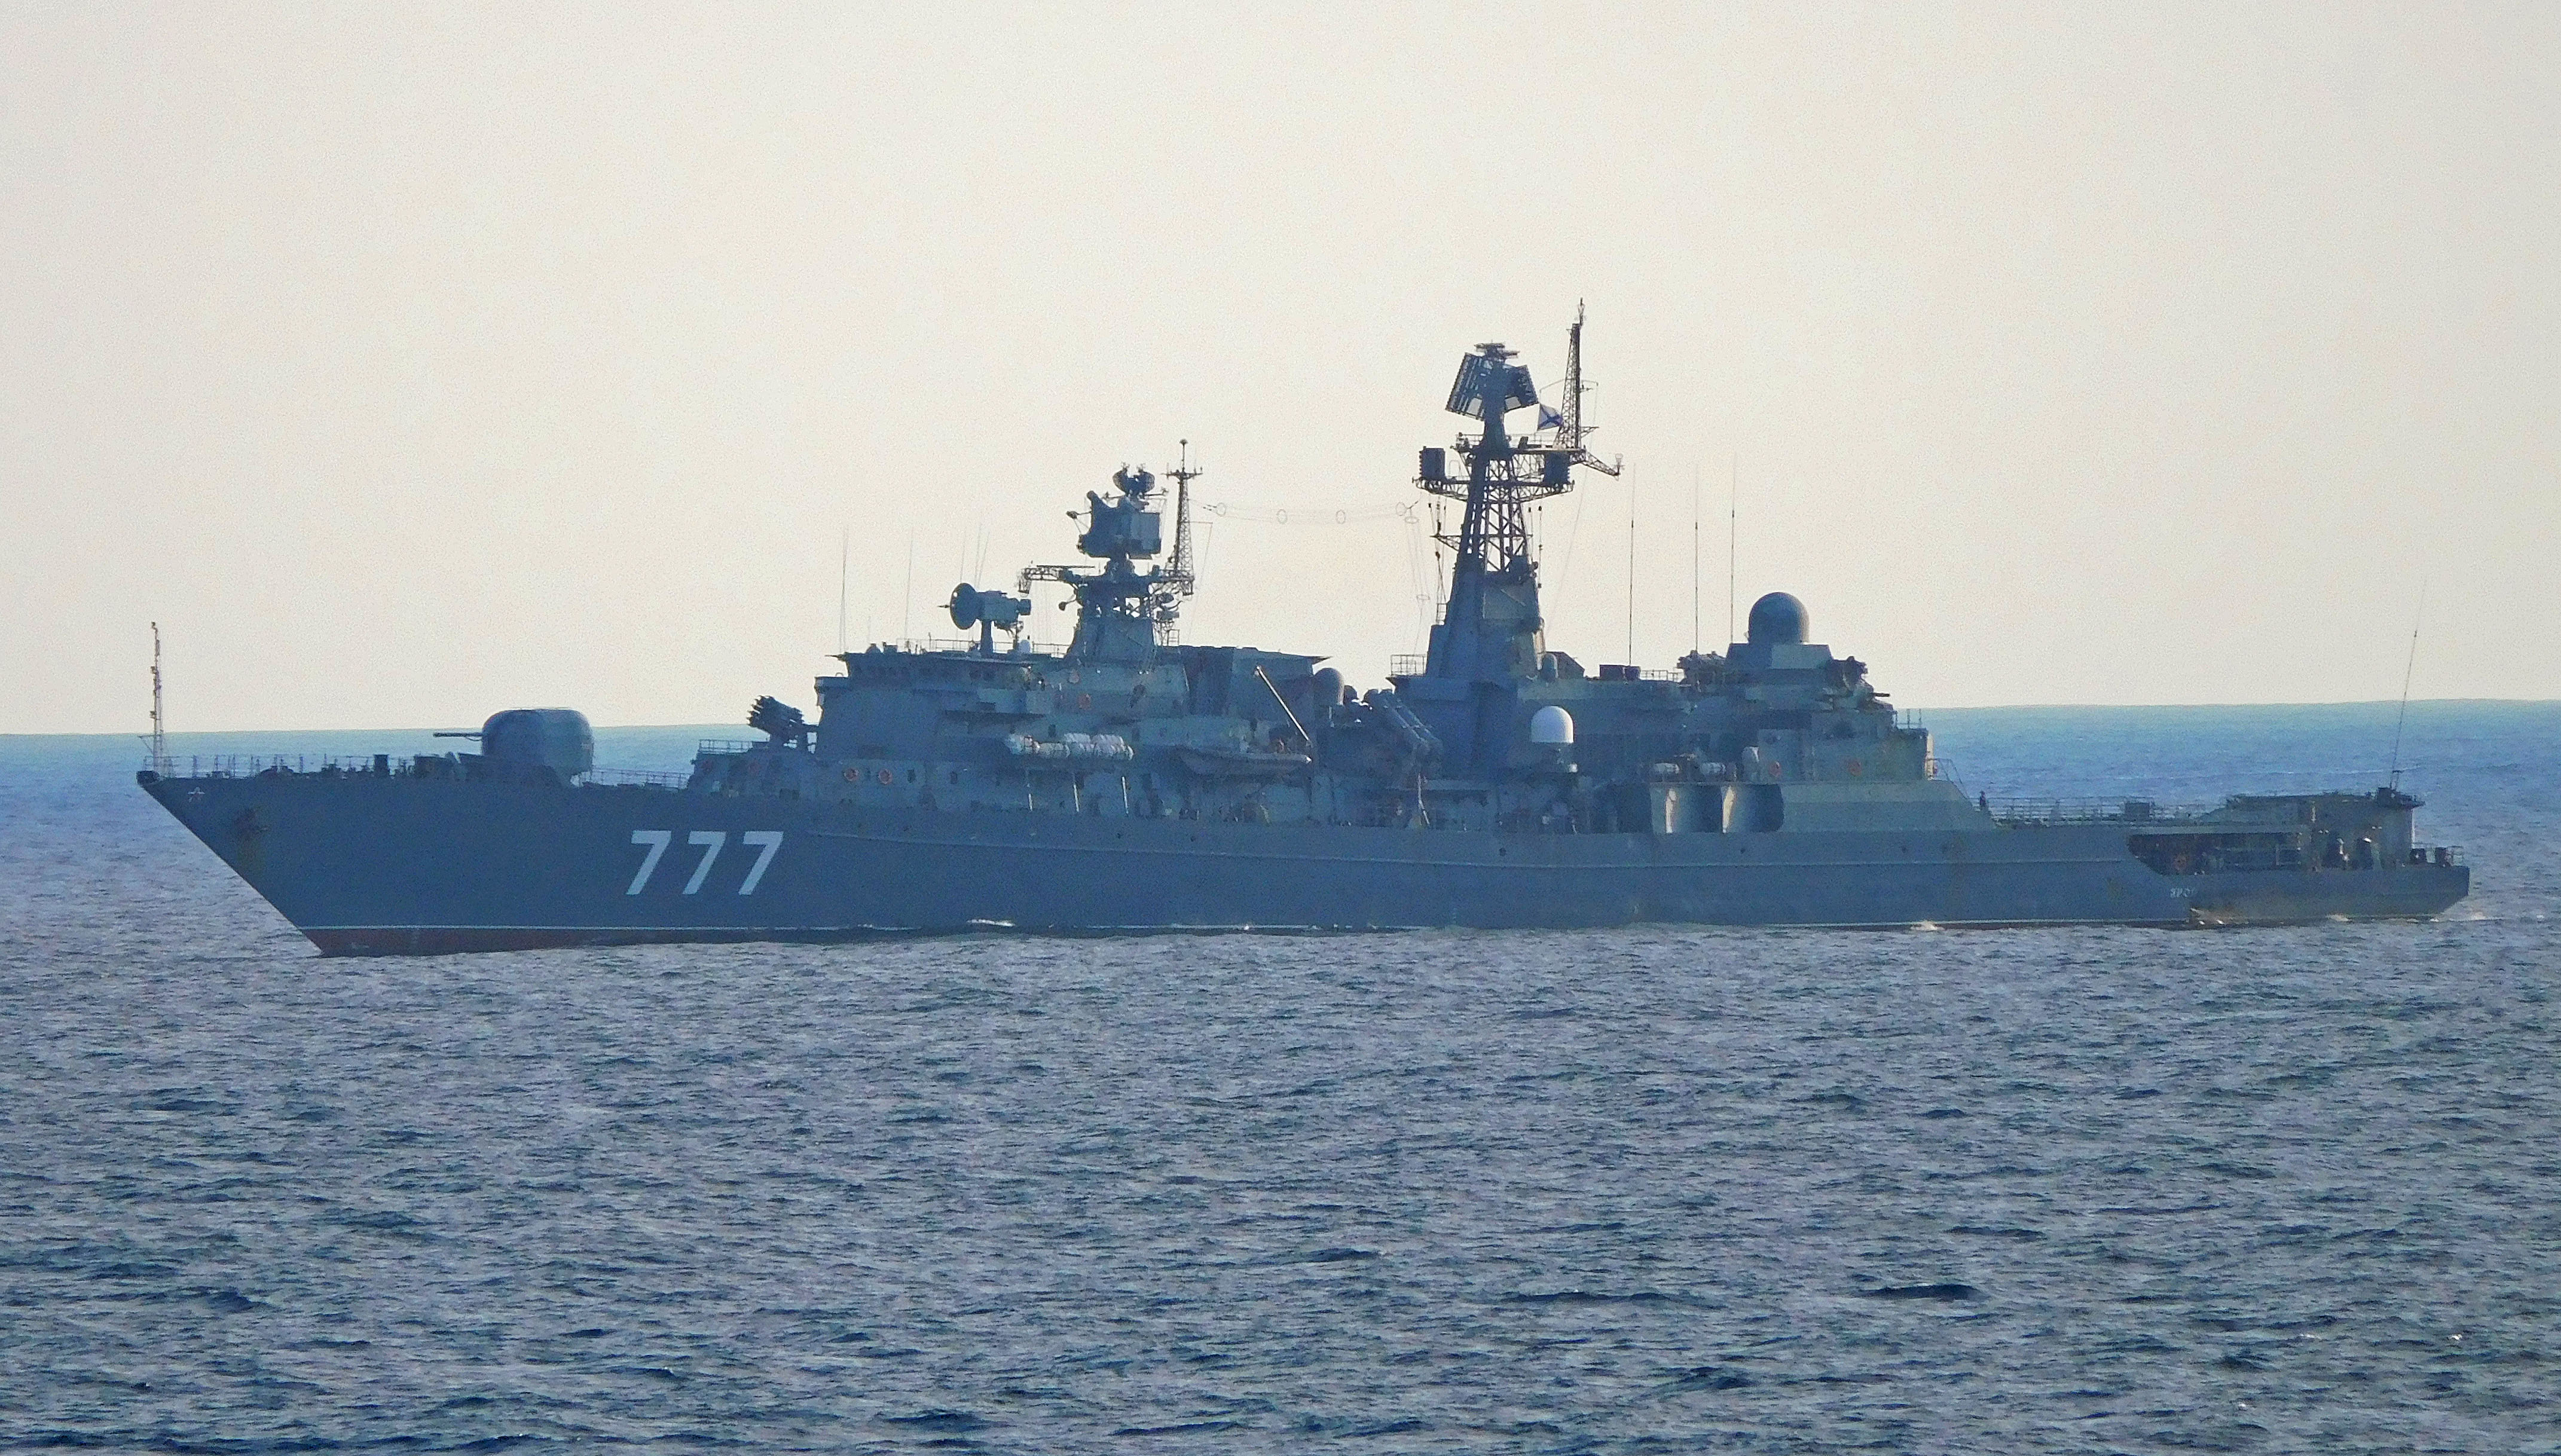 Russian Navy - Marine Russe - Page 22 46664743841_af9c97f786_o